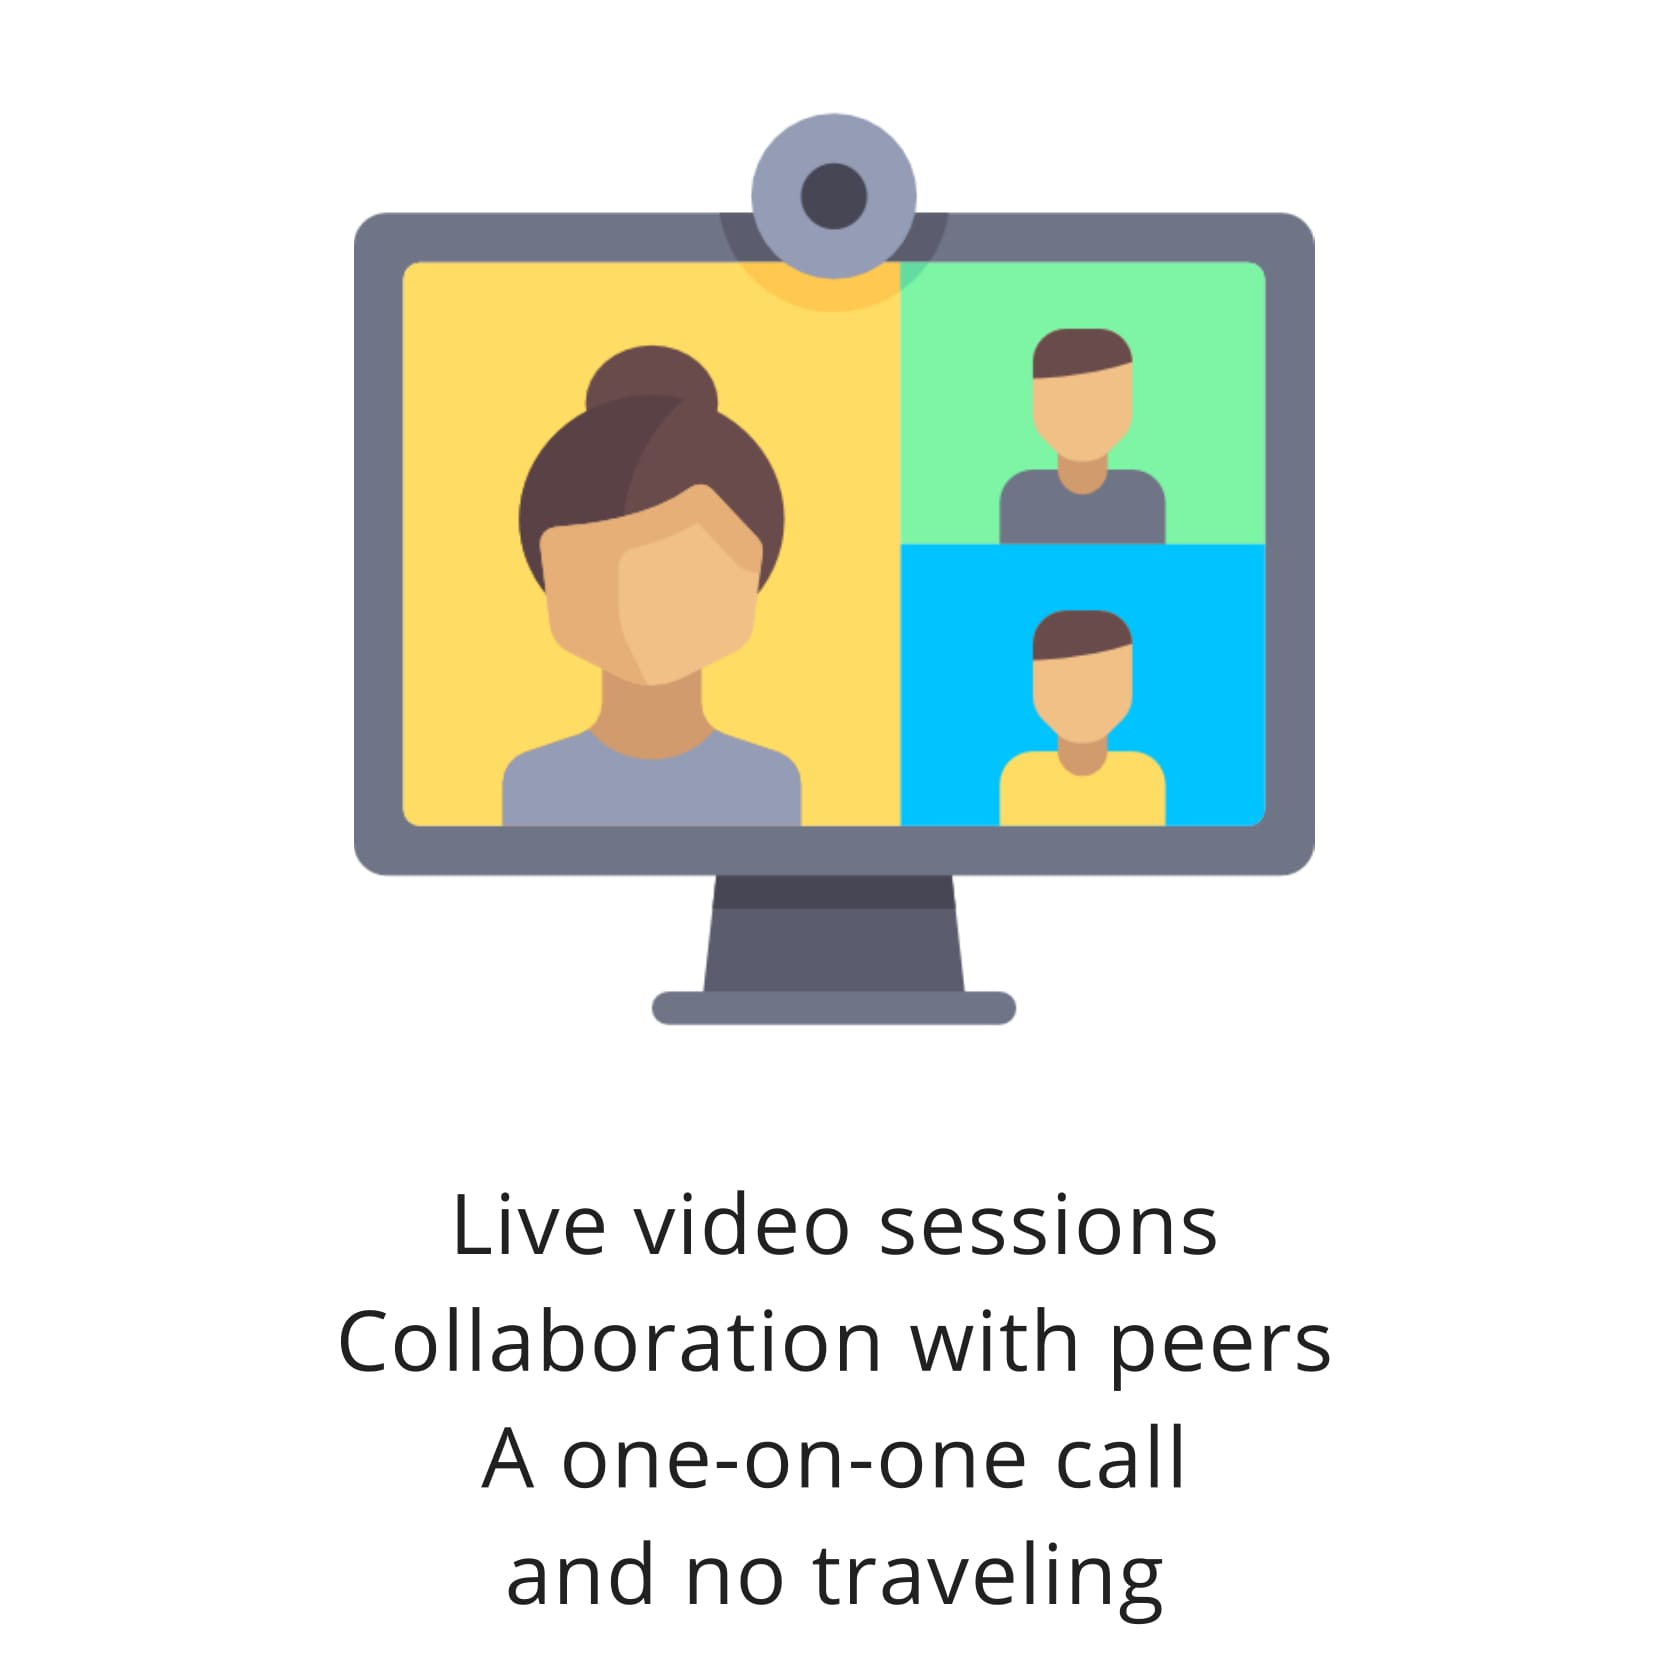 Live video sessionsCollaboration with peersA one-on-one calland no traveling (3)-1.jpg